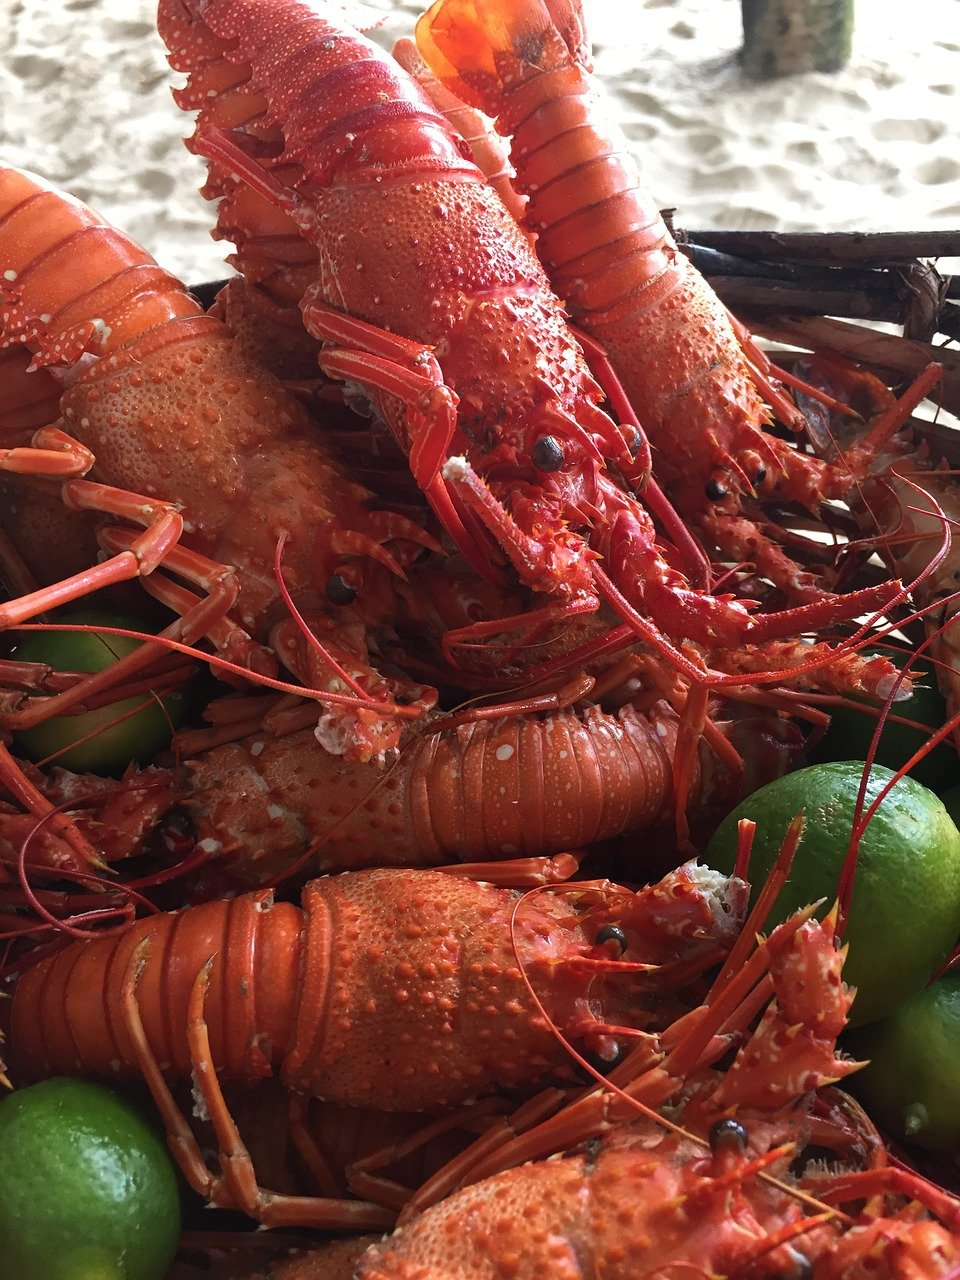 FREE crustacean Stock Photos from PikWizard